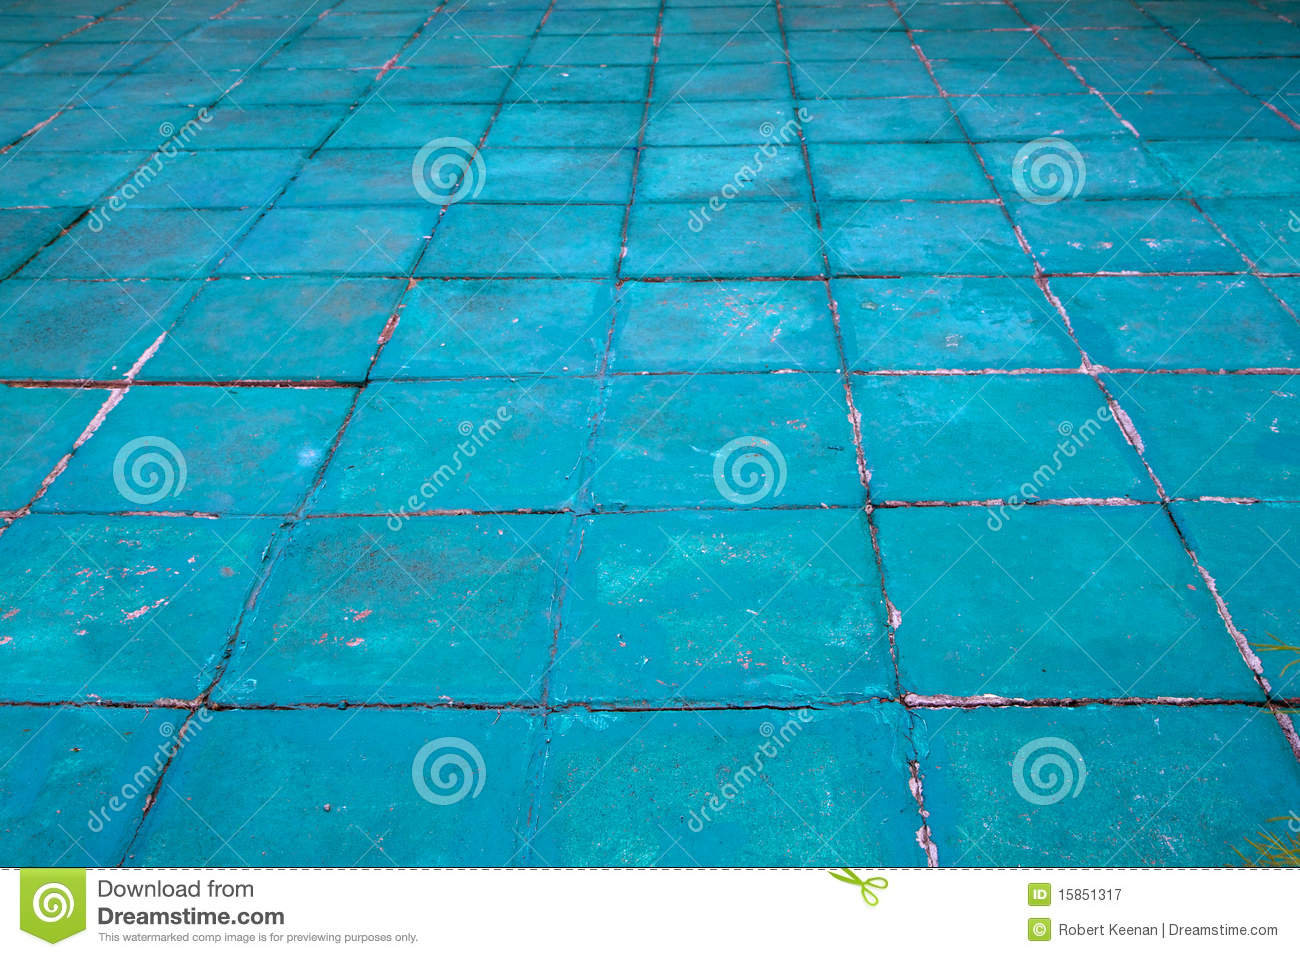 Aqua floor tile image collections home flooring design aqua floor tile images home flooring design aqua floor tile image collections home flooring design aqua doublecrazyfo Gallery